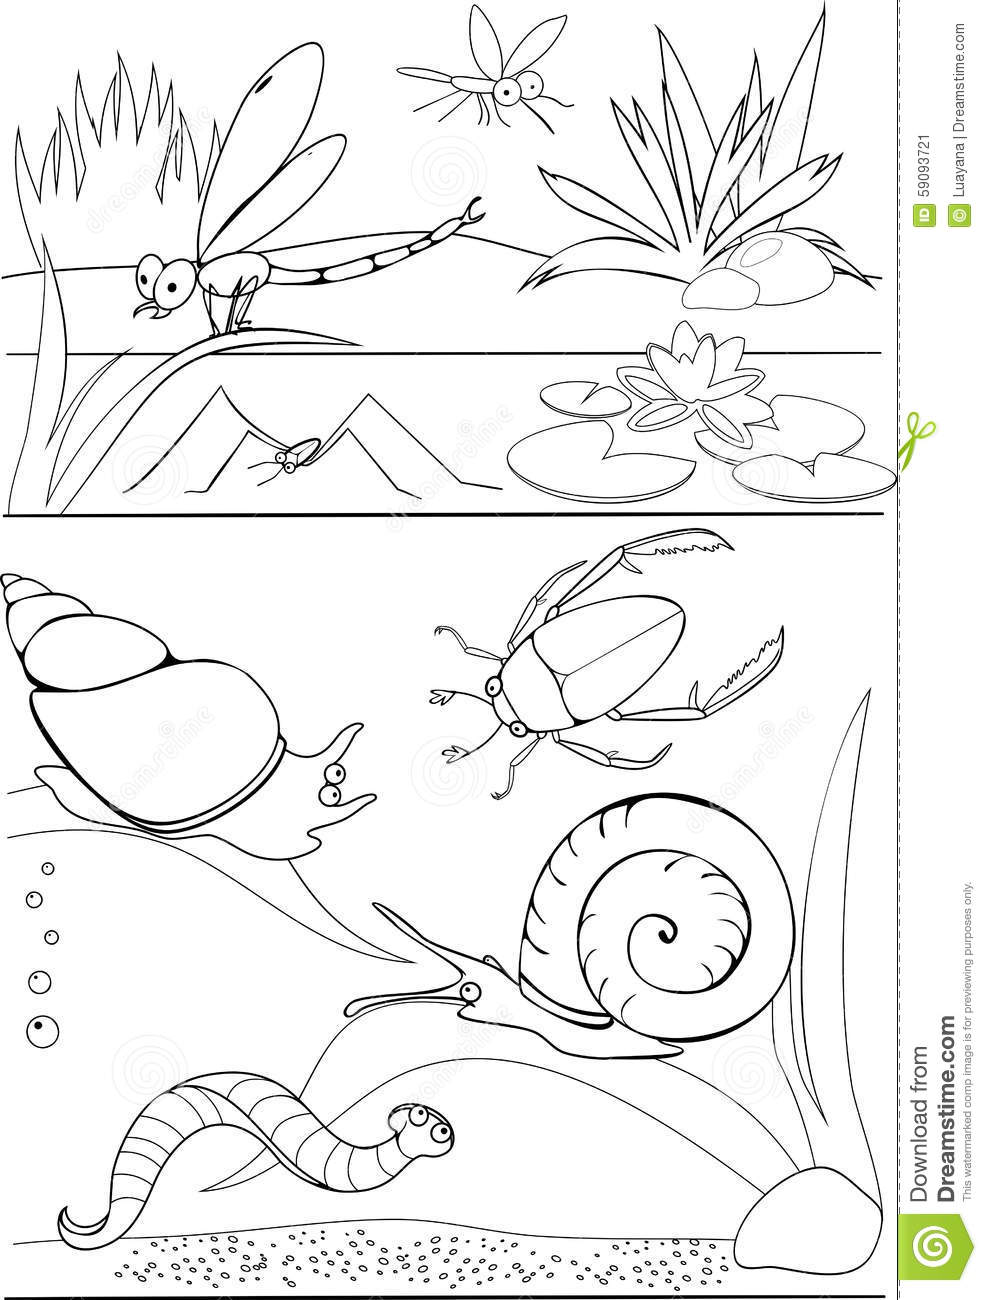 pond coloring pages pond printables free coloring pages adult coloring pages coloring pages pond